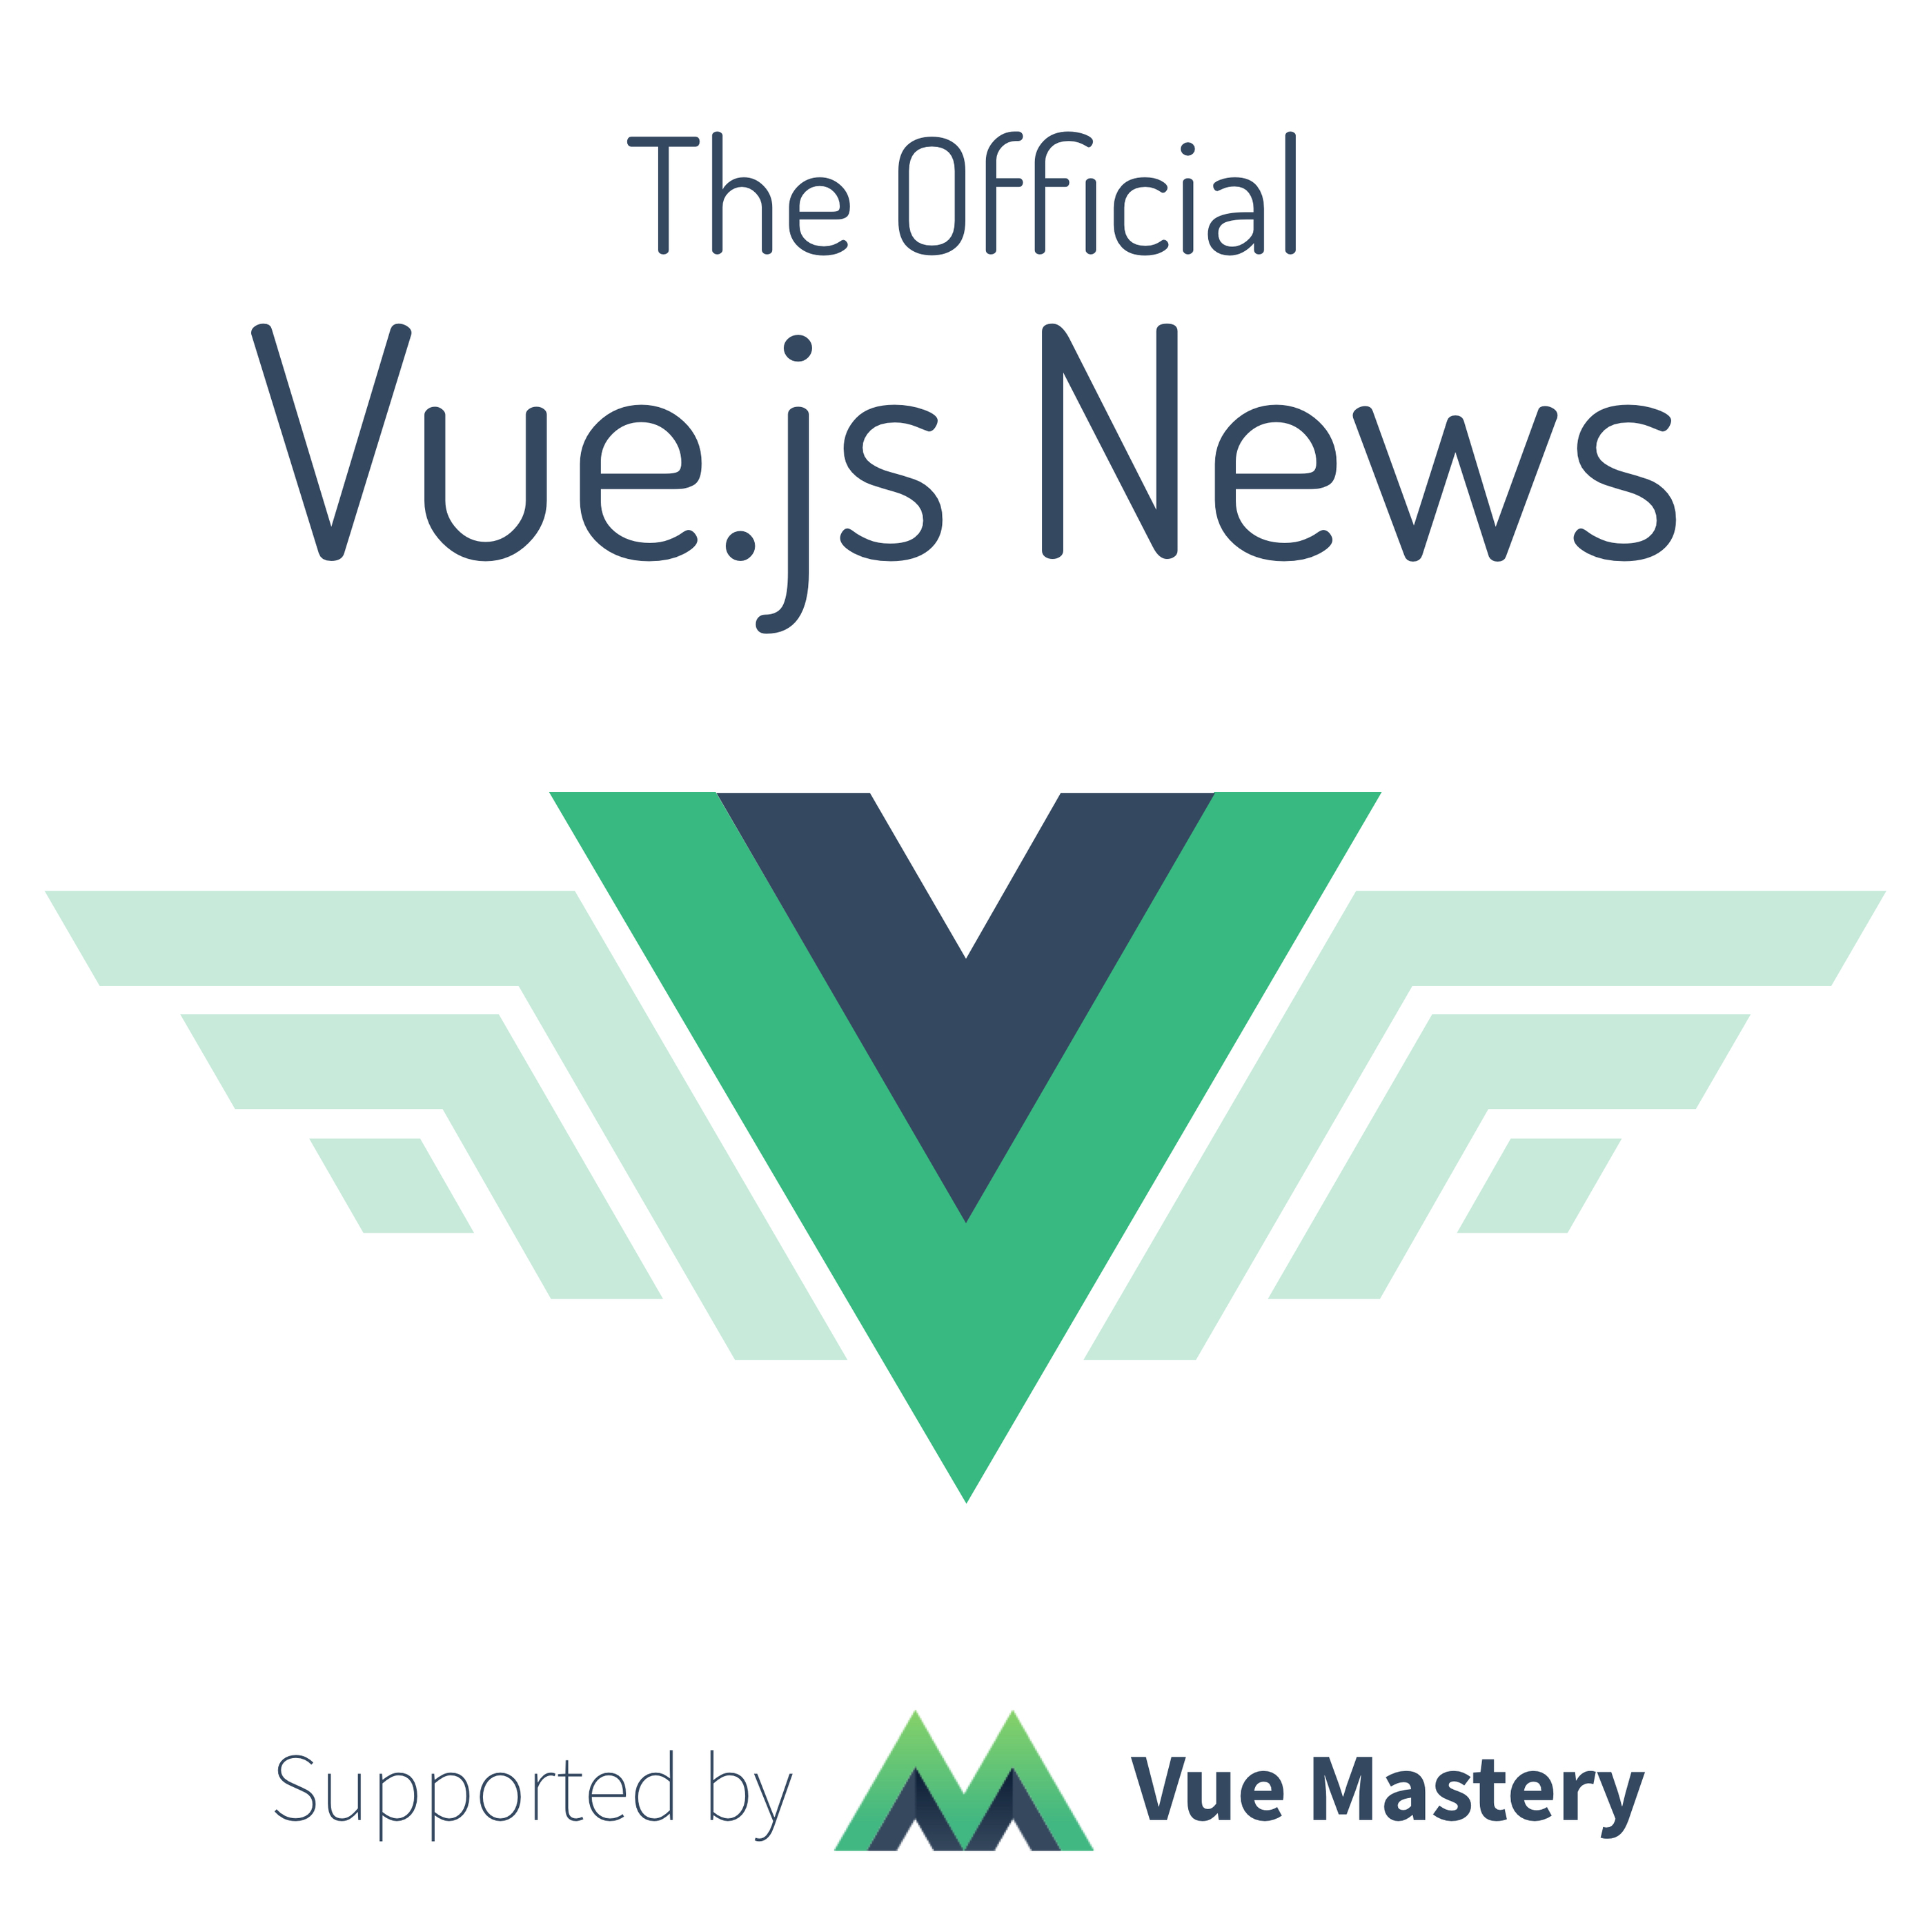 Providing Vue developers the latest news and tutorials to stay up-to-date with their technology, in about 5 minutes